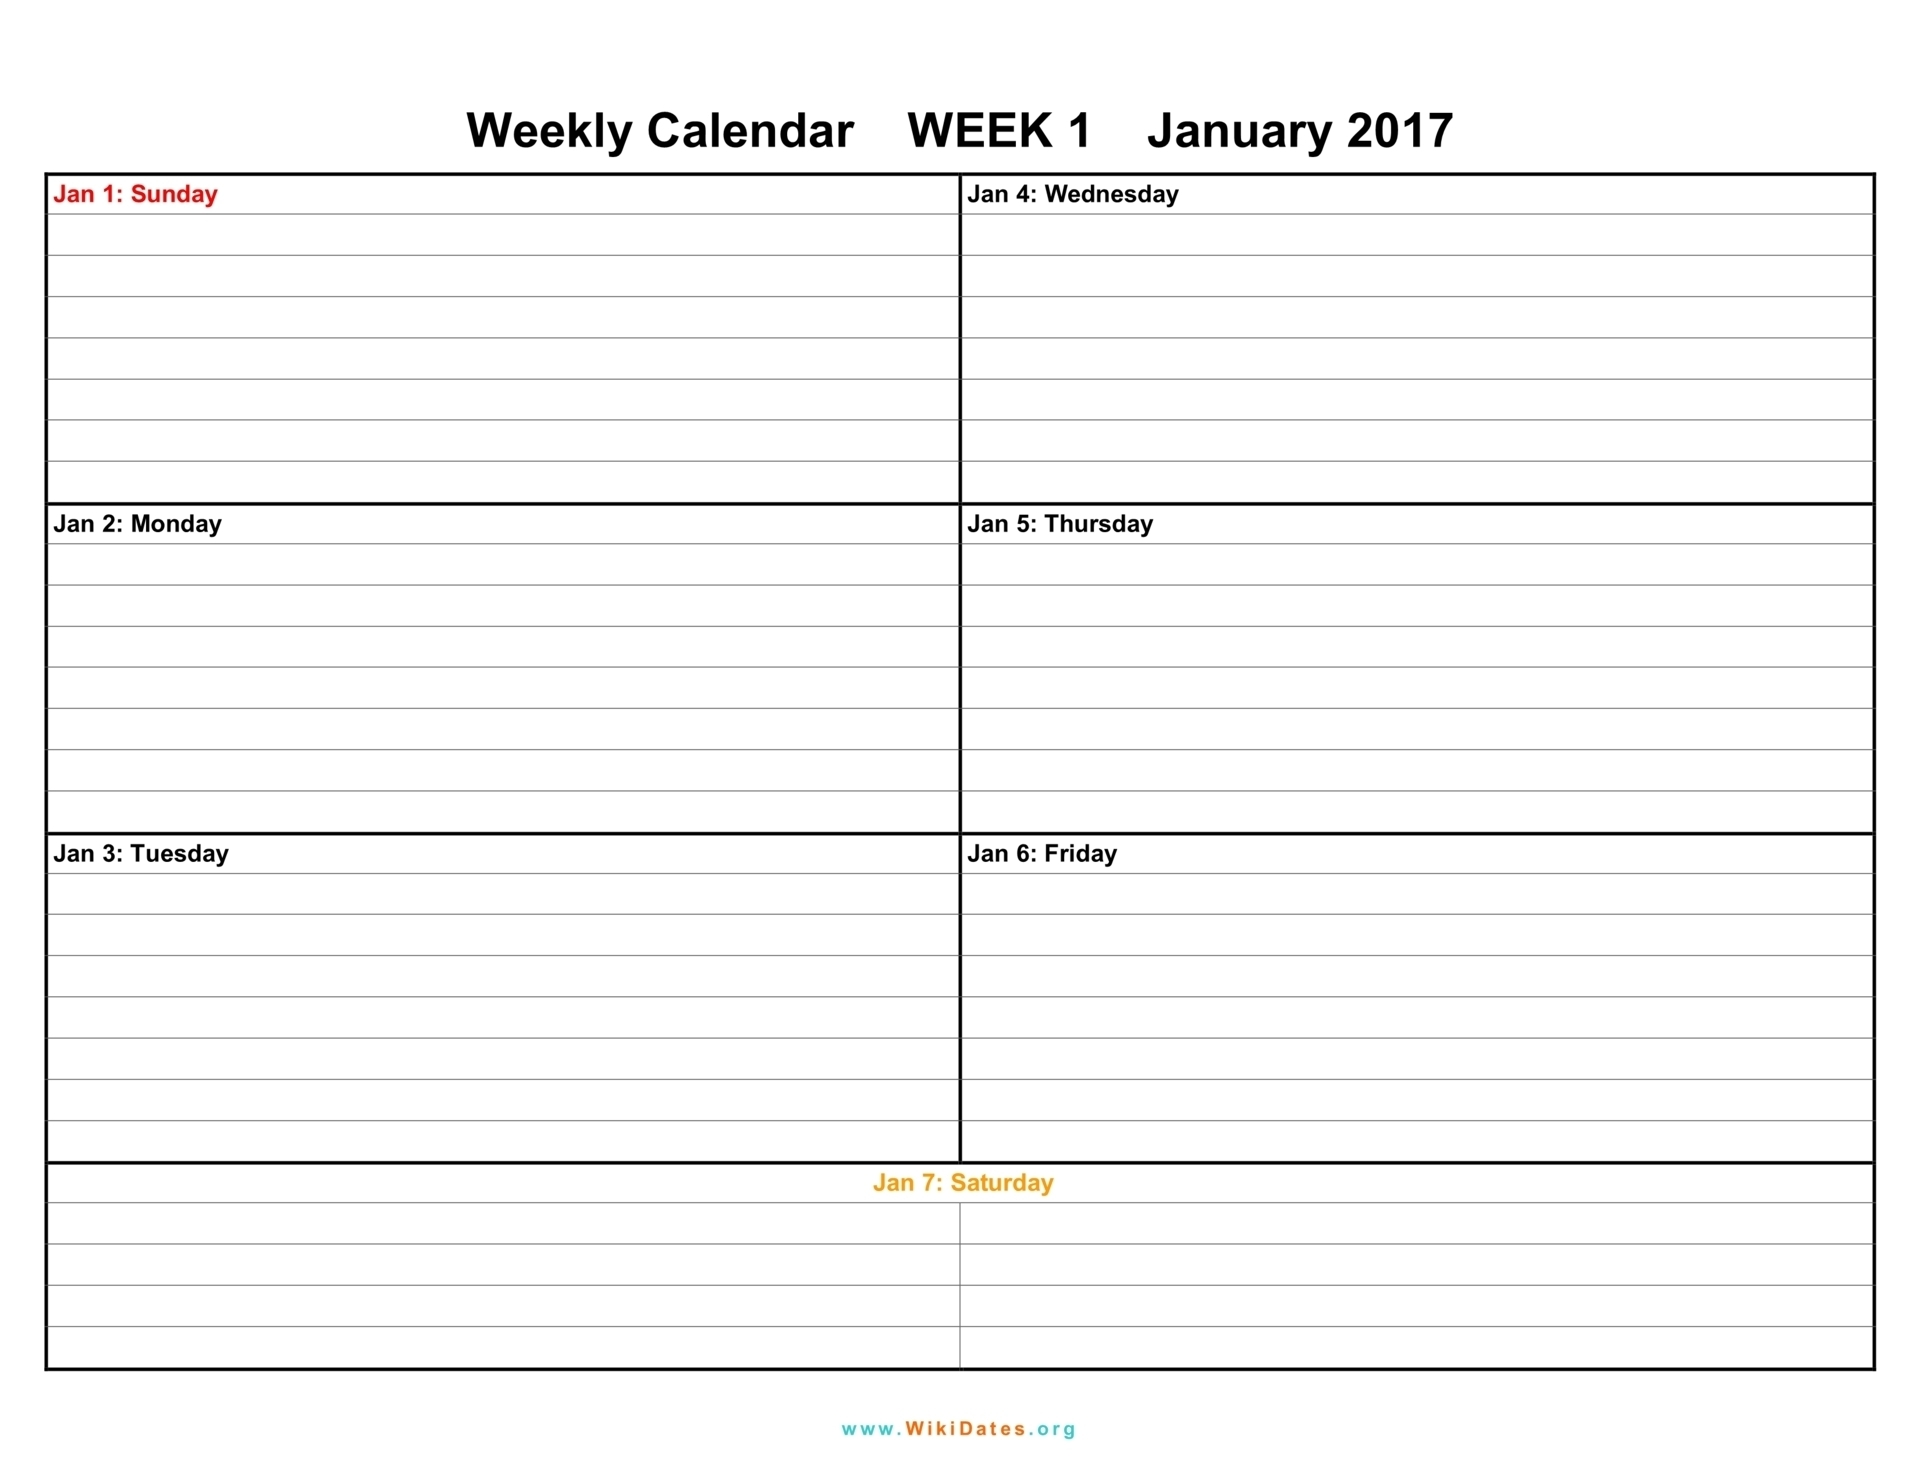 Free Table Calendar Pdf Weekly With Times Templates | Smorad intended for Weekly Calandar Template Starting Monday